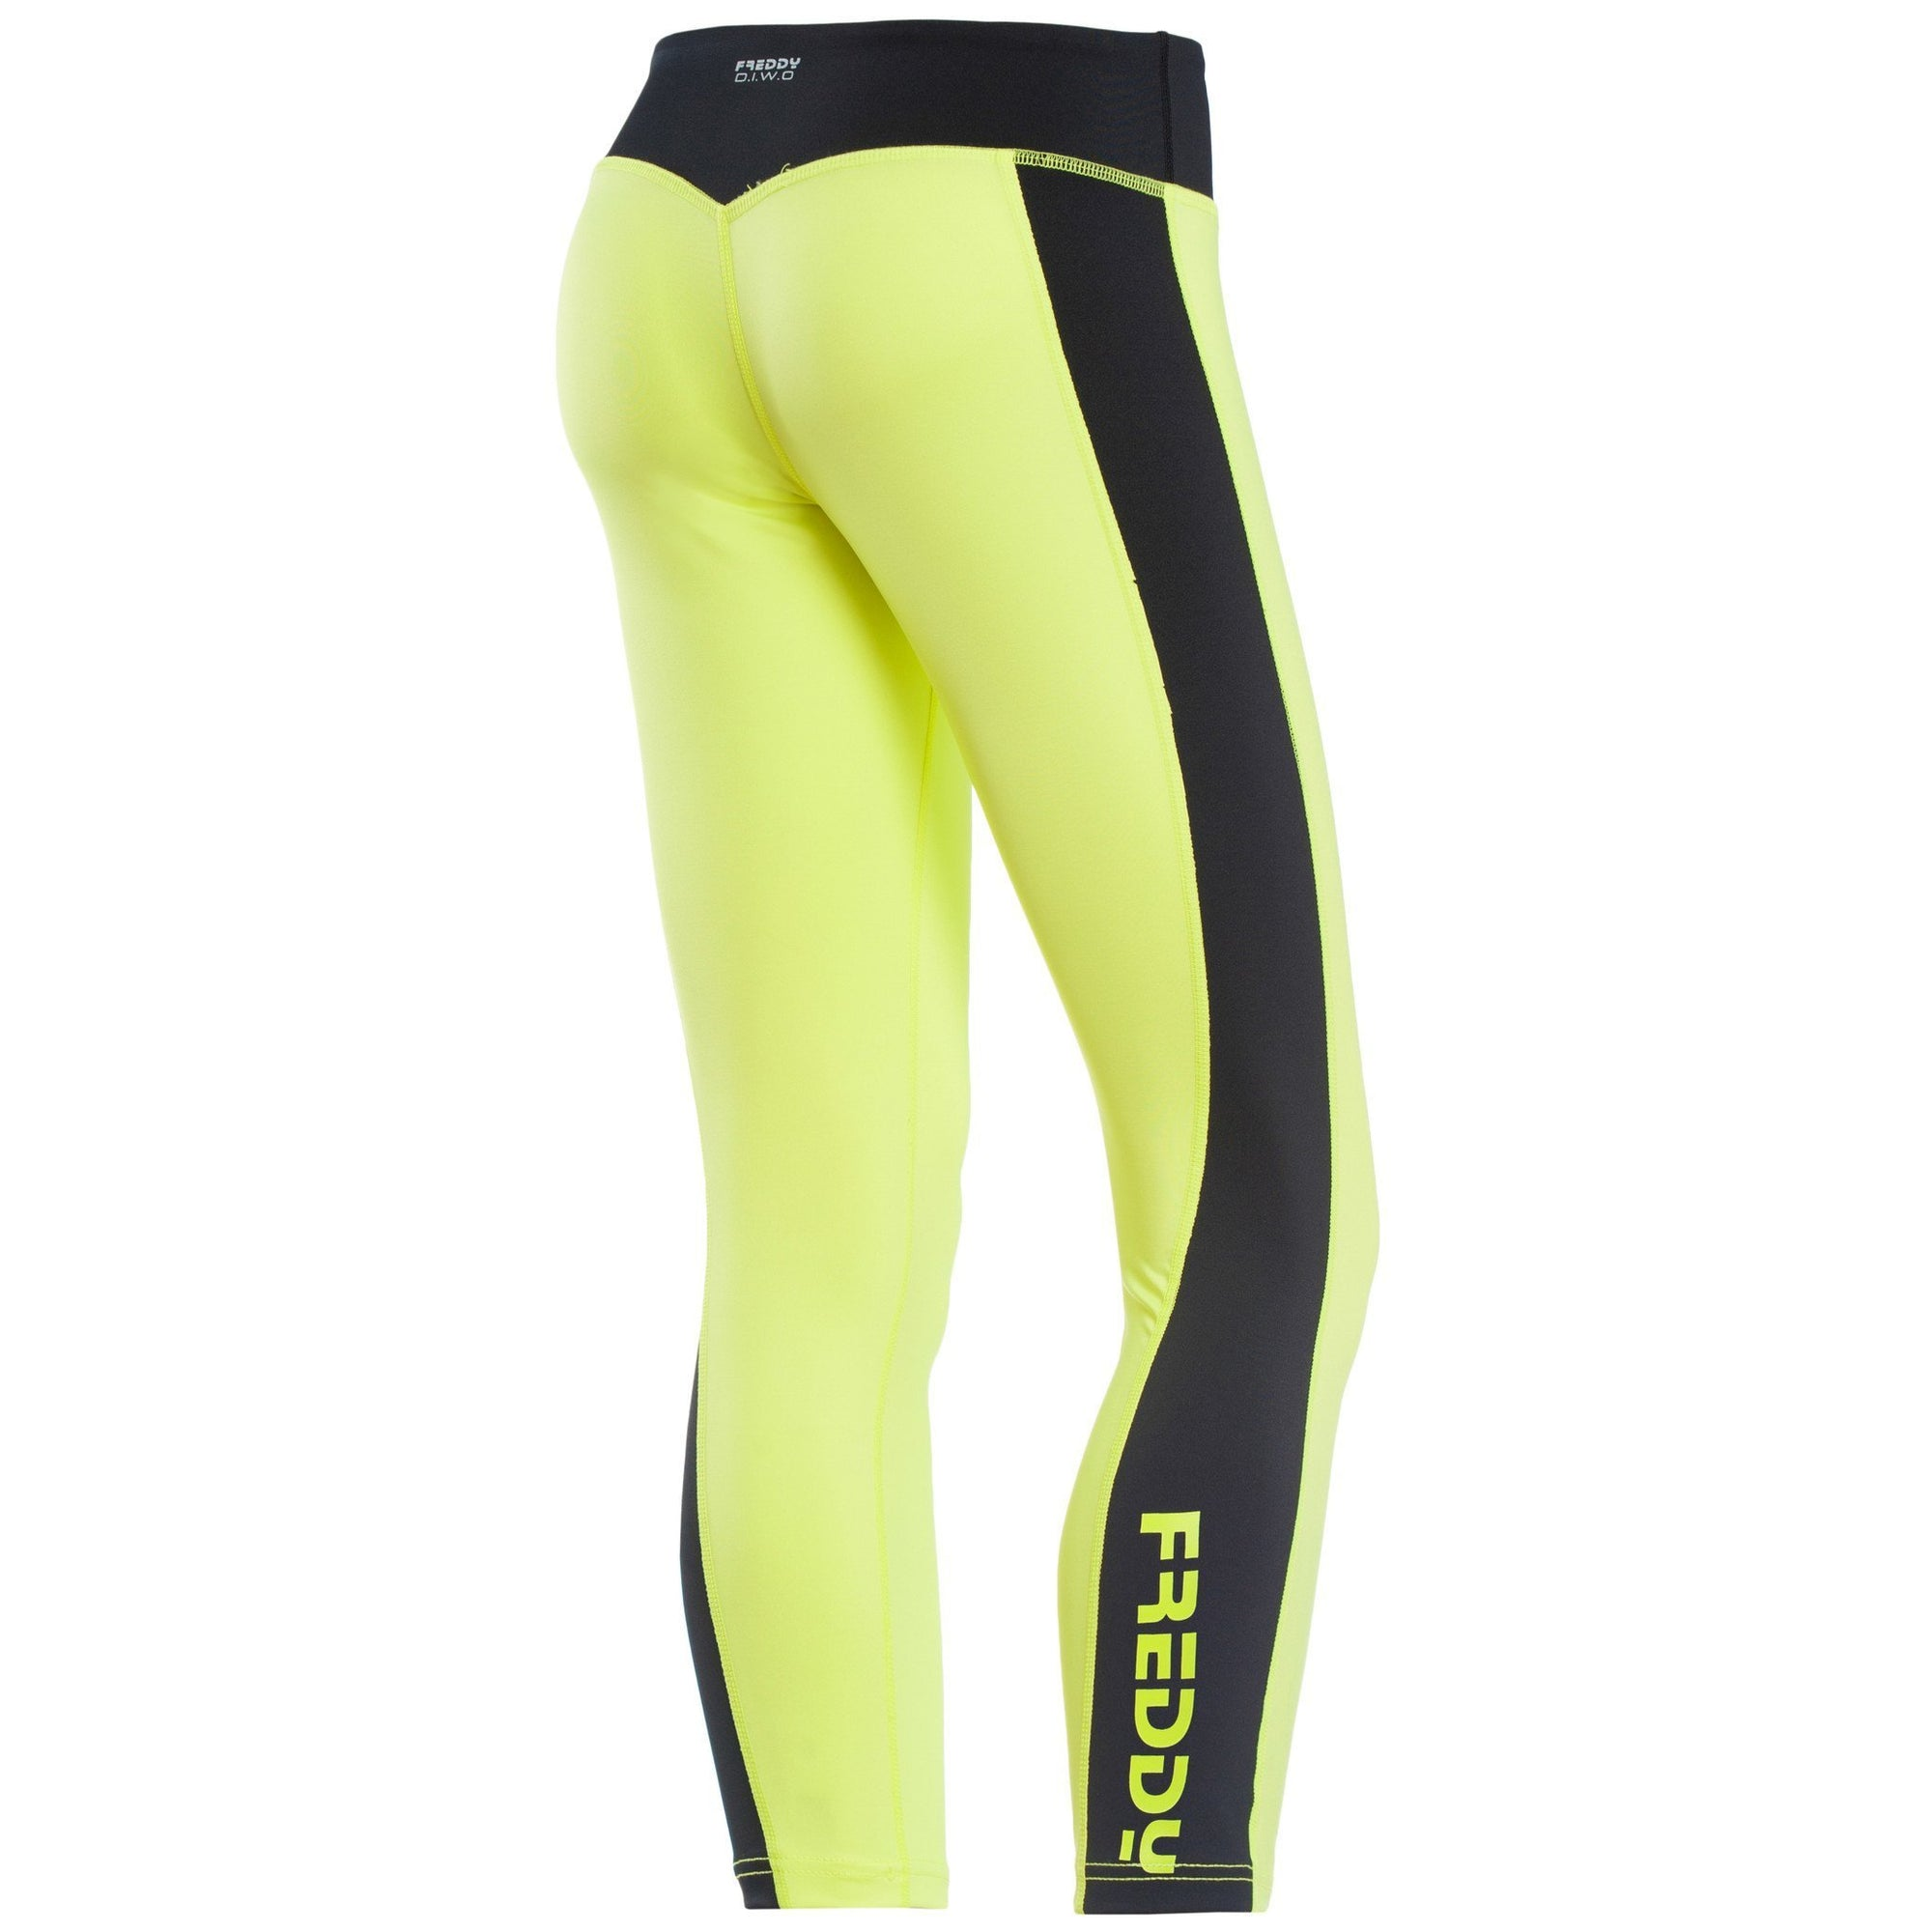 SUPERFIT NEON YELLOW FREDDY SIDE LOGO